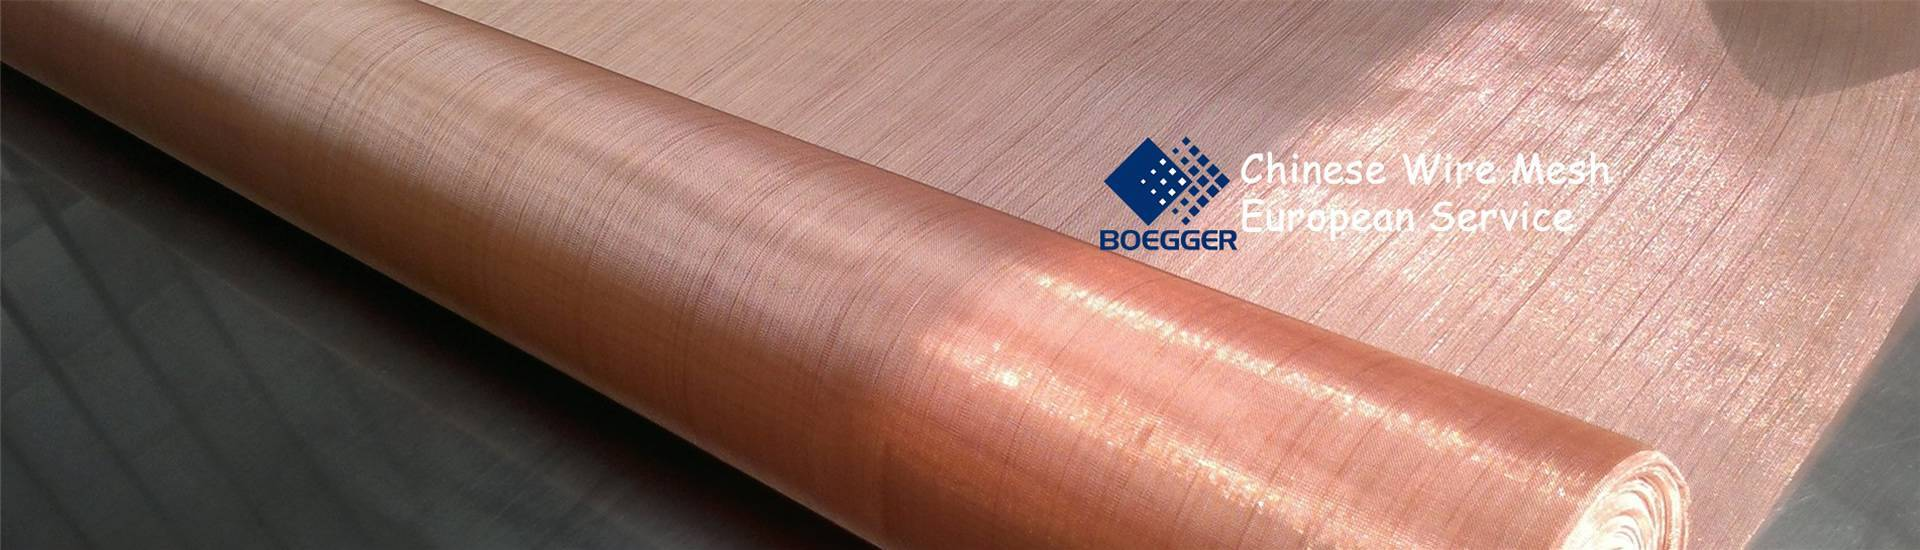 Copper Wire Mesh Screen System - Woven, Expanded